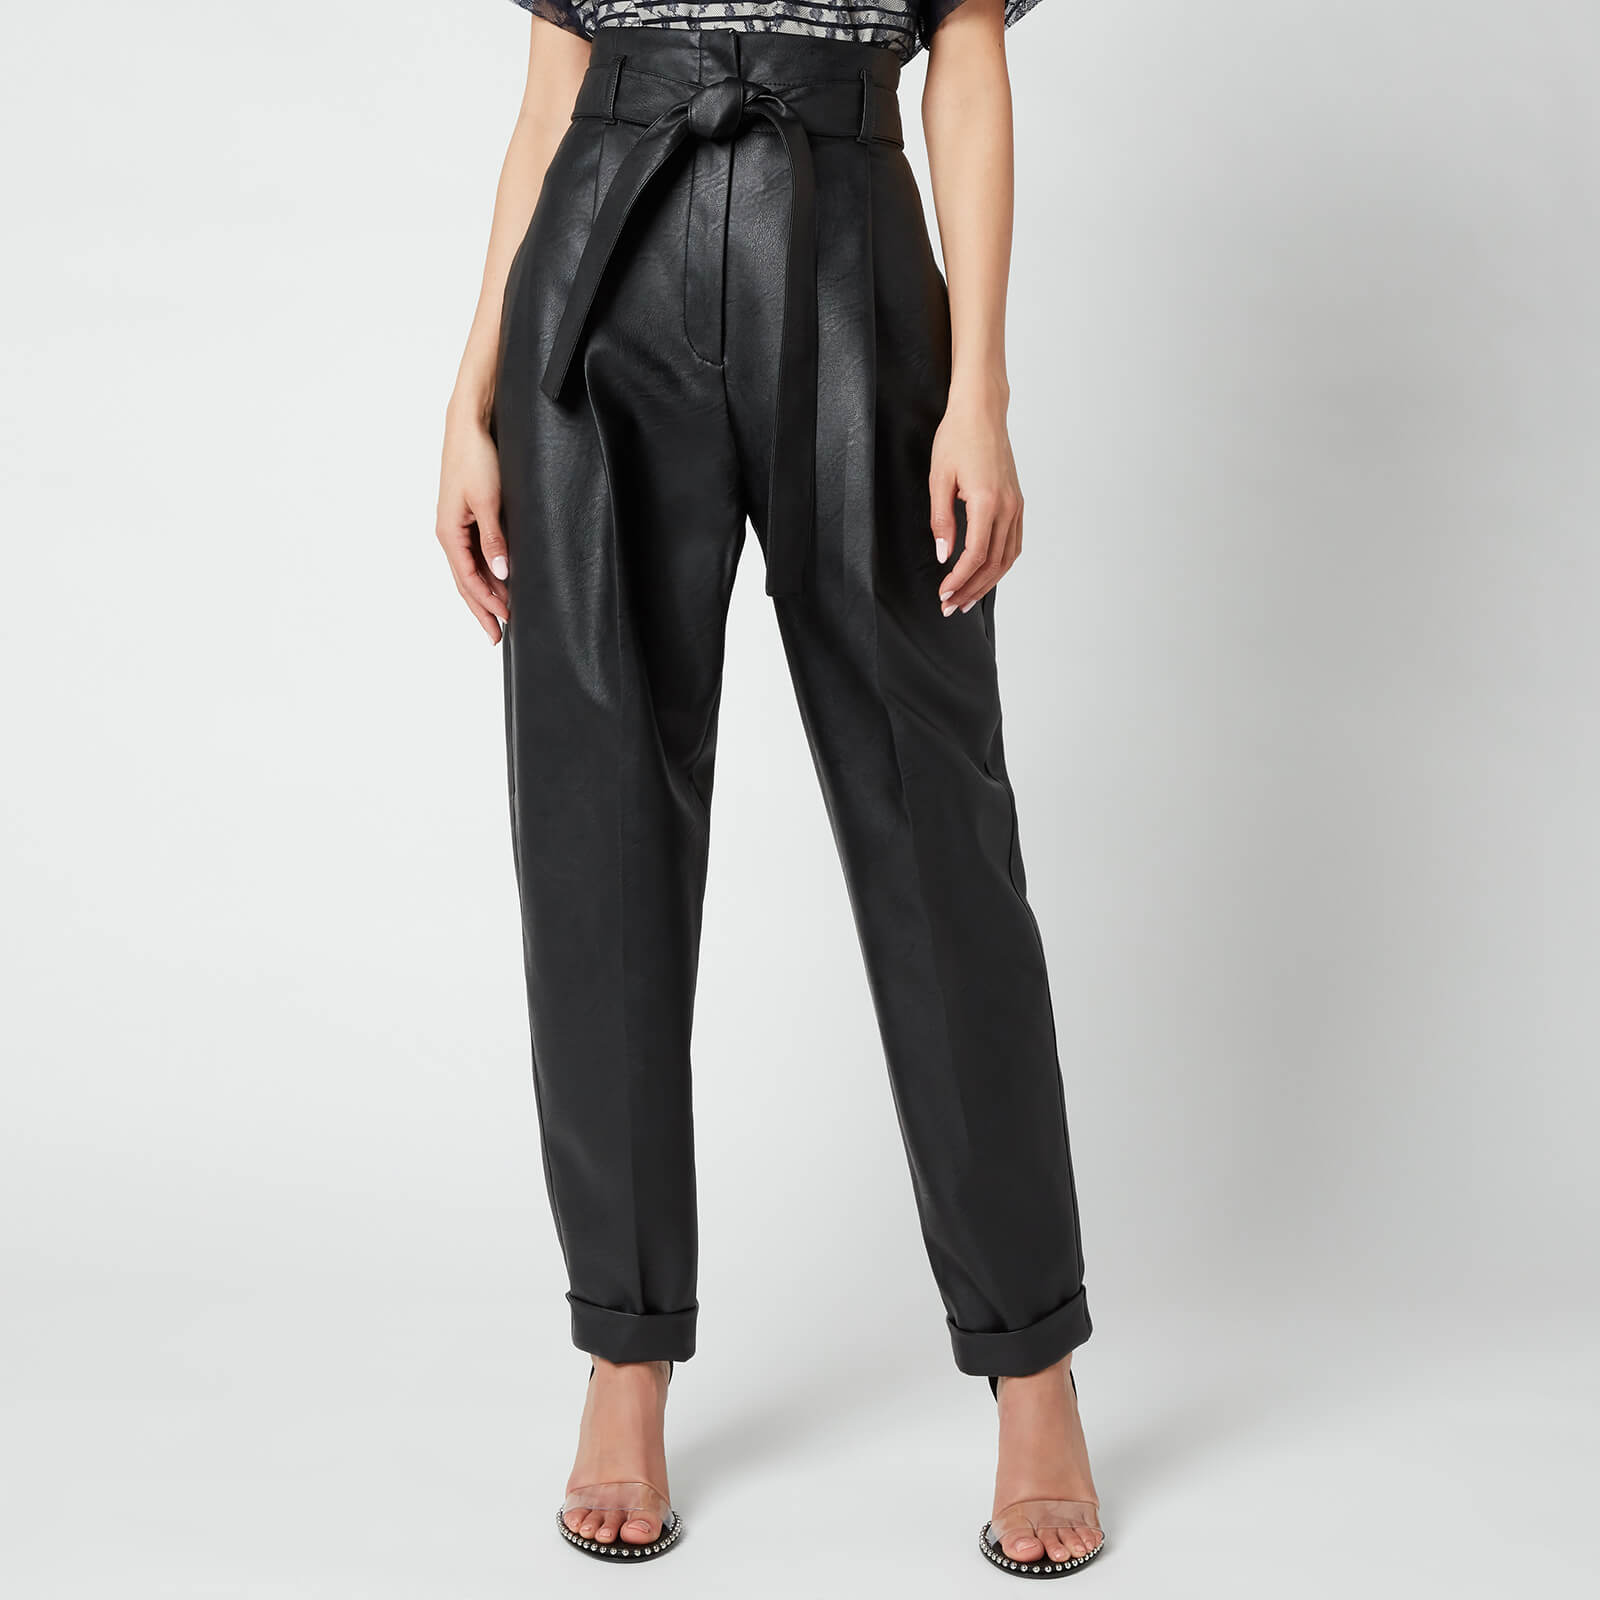 Philosophy di Lorenzo Serafini Women's Faux Leather Trousers with Bow Detail - Black - IT 42/UK 10